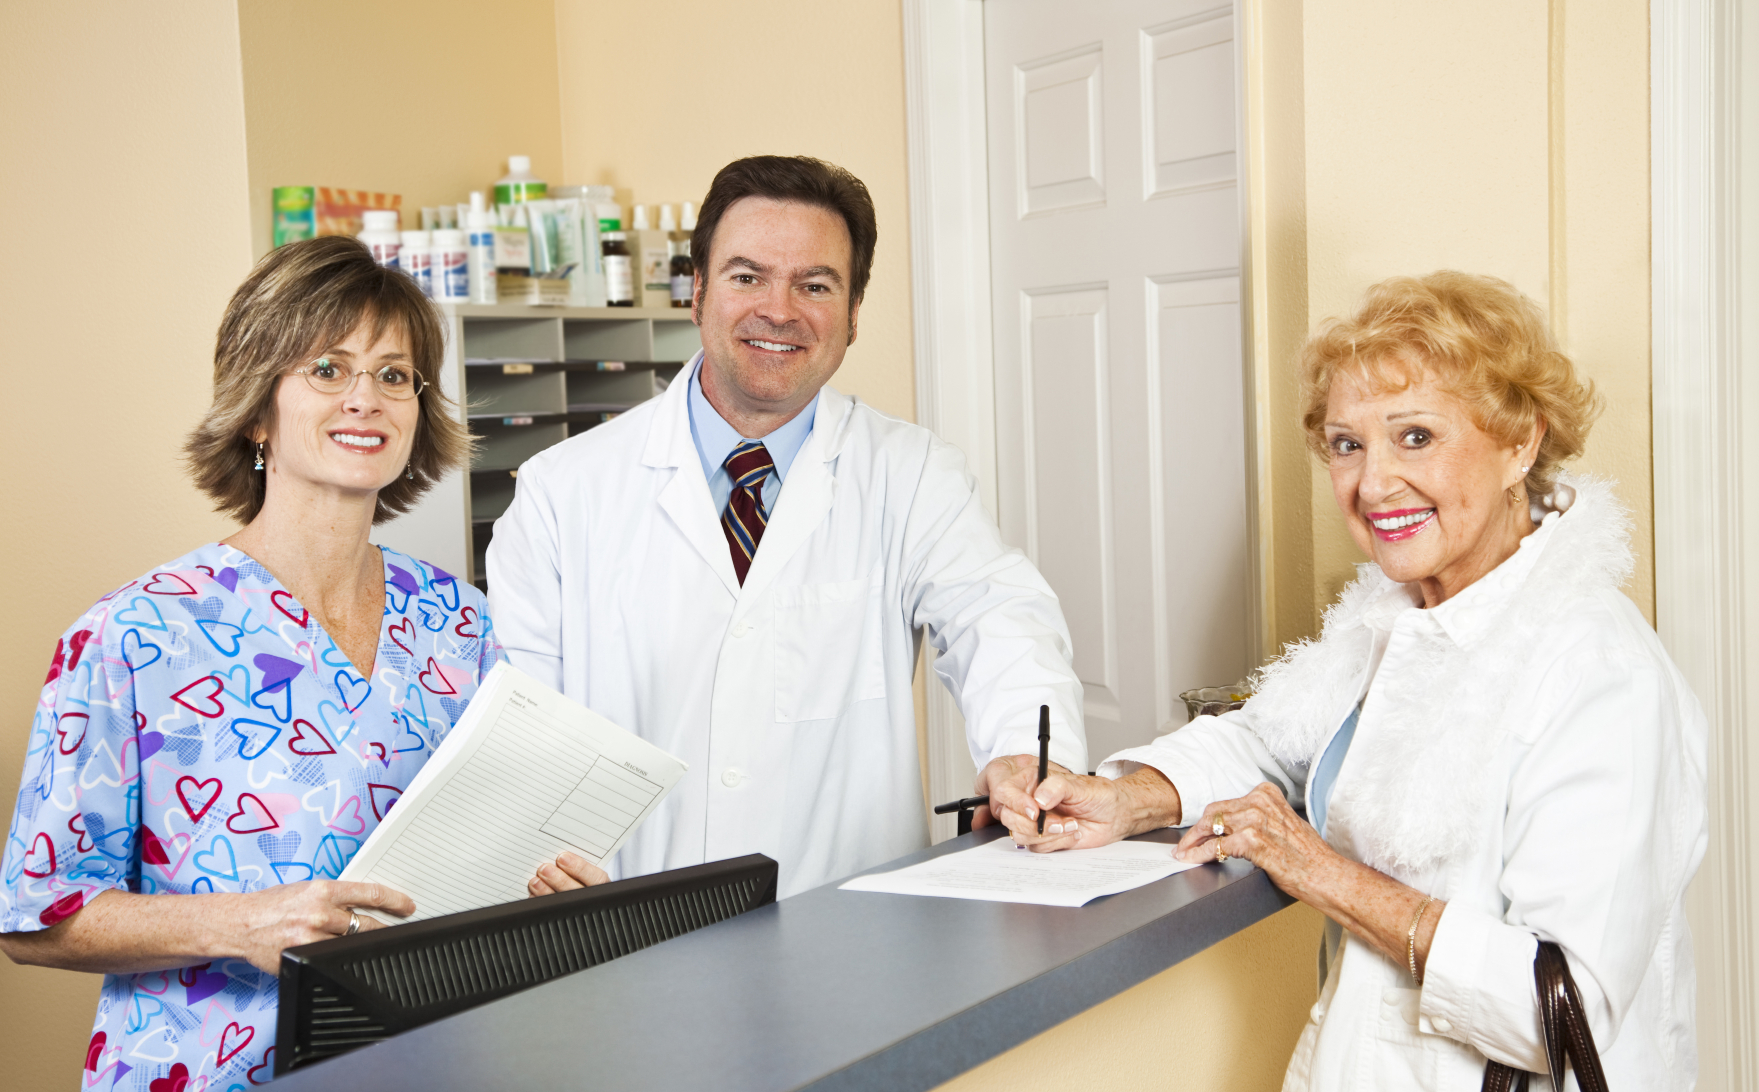 Doctor and Nurse with patient at desk